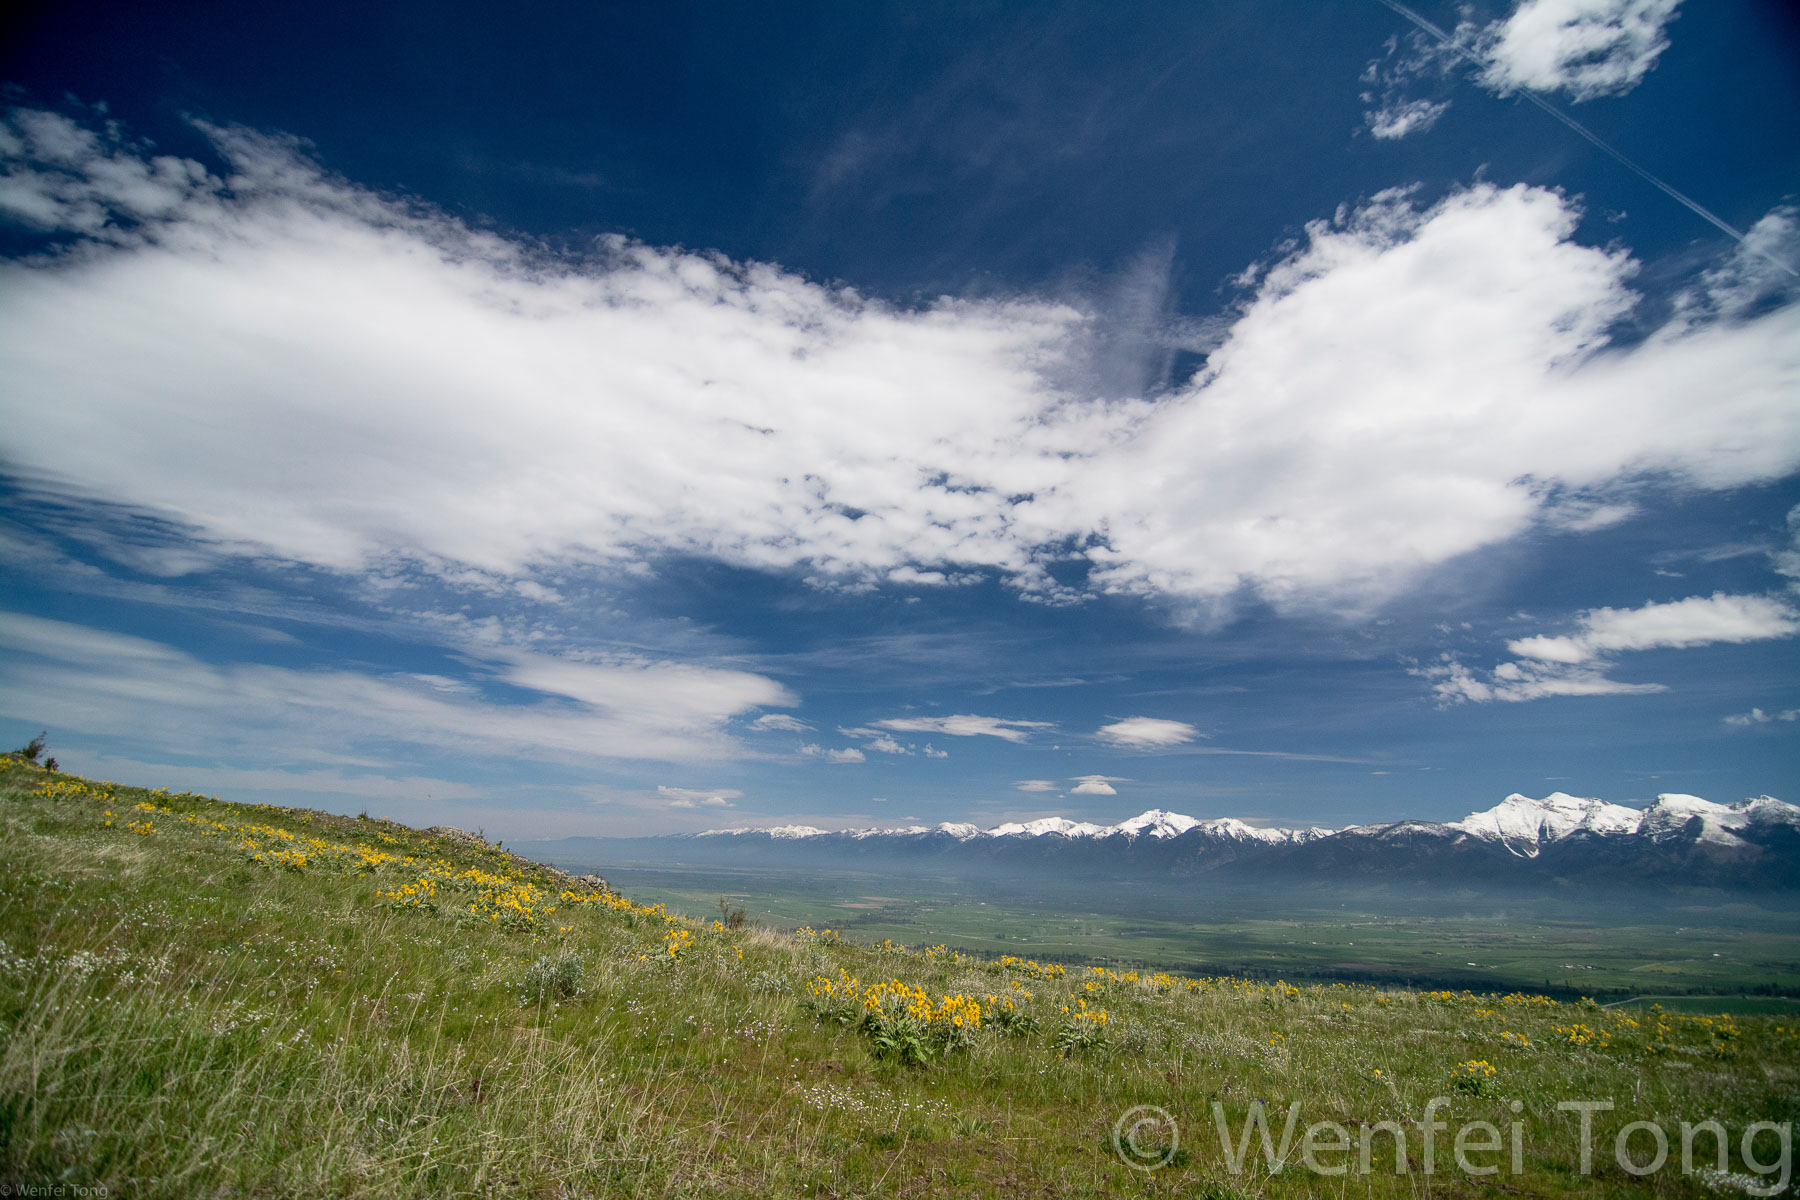 Arrowleaf balsamroot in bloom with the Mission mountains in the distance